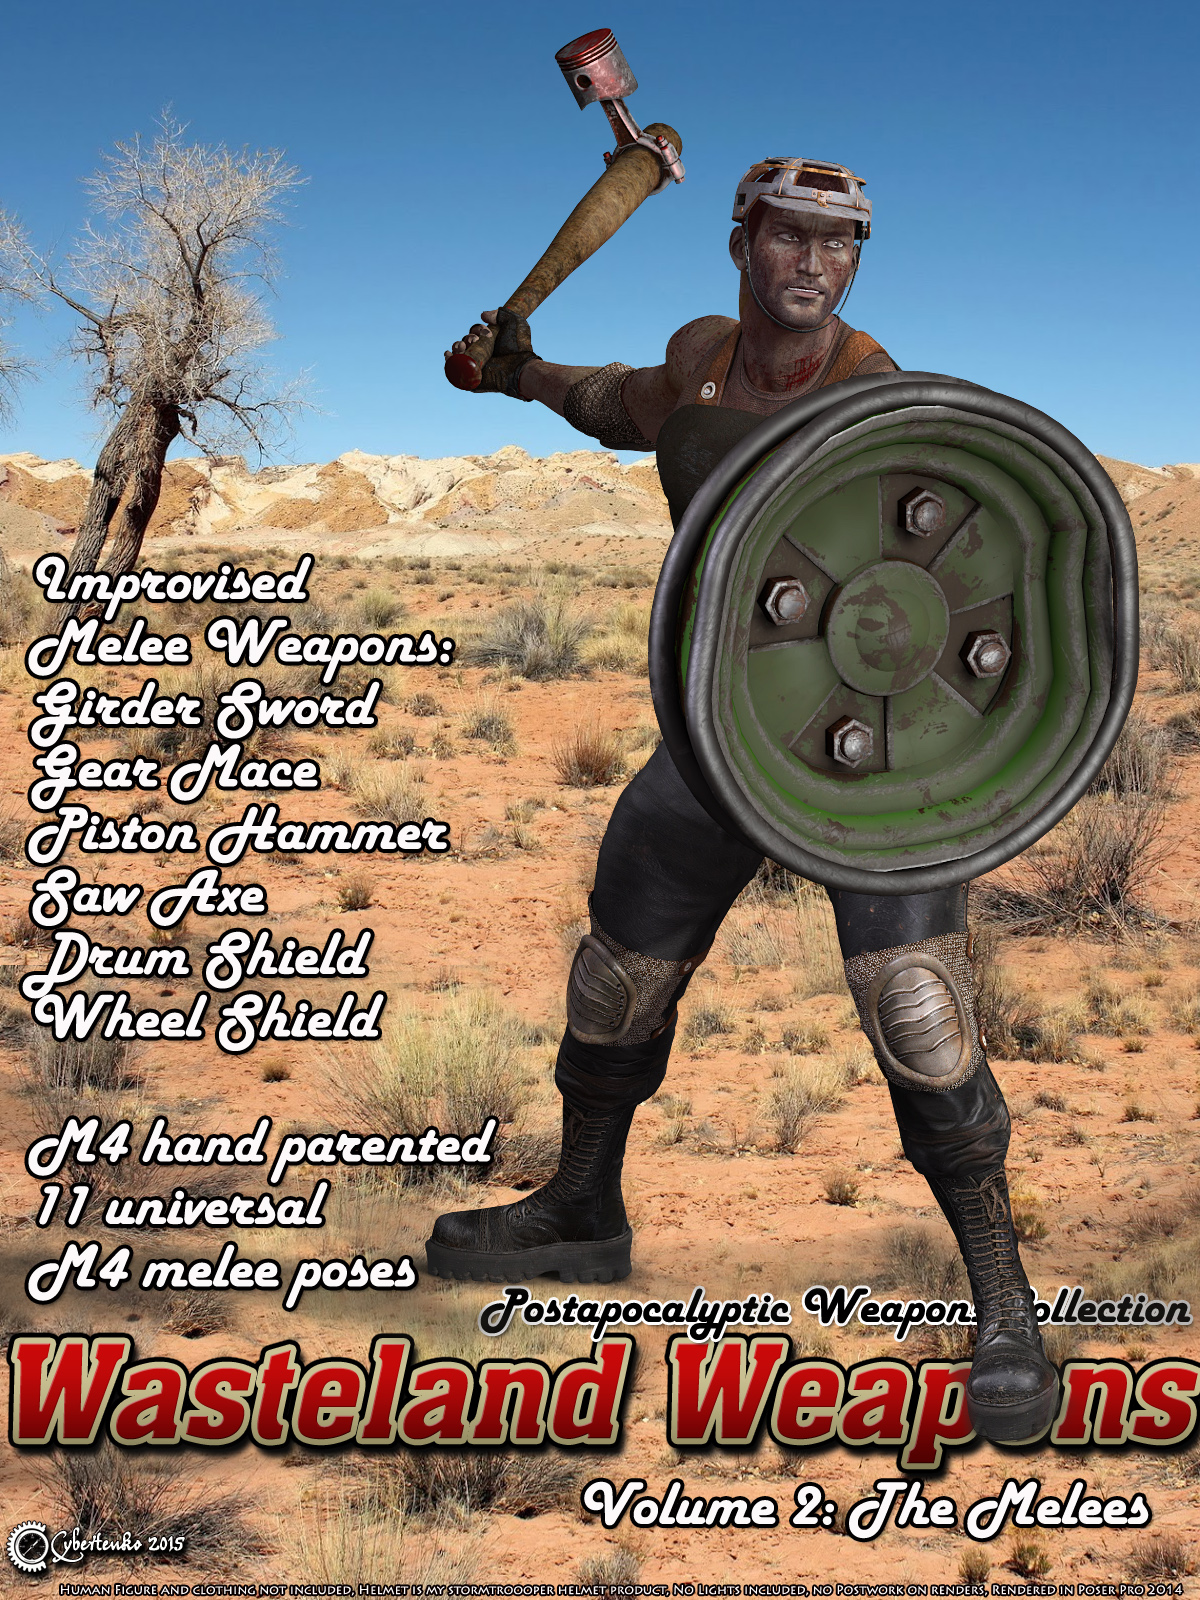 Wasteland Weapons 2: The Melees by Cybertenko